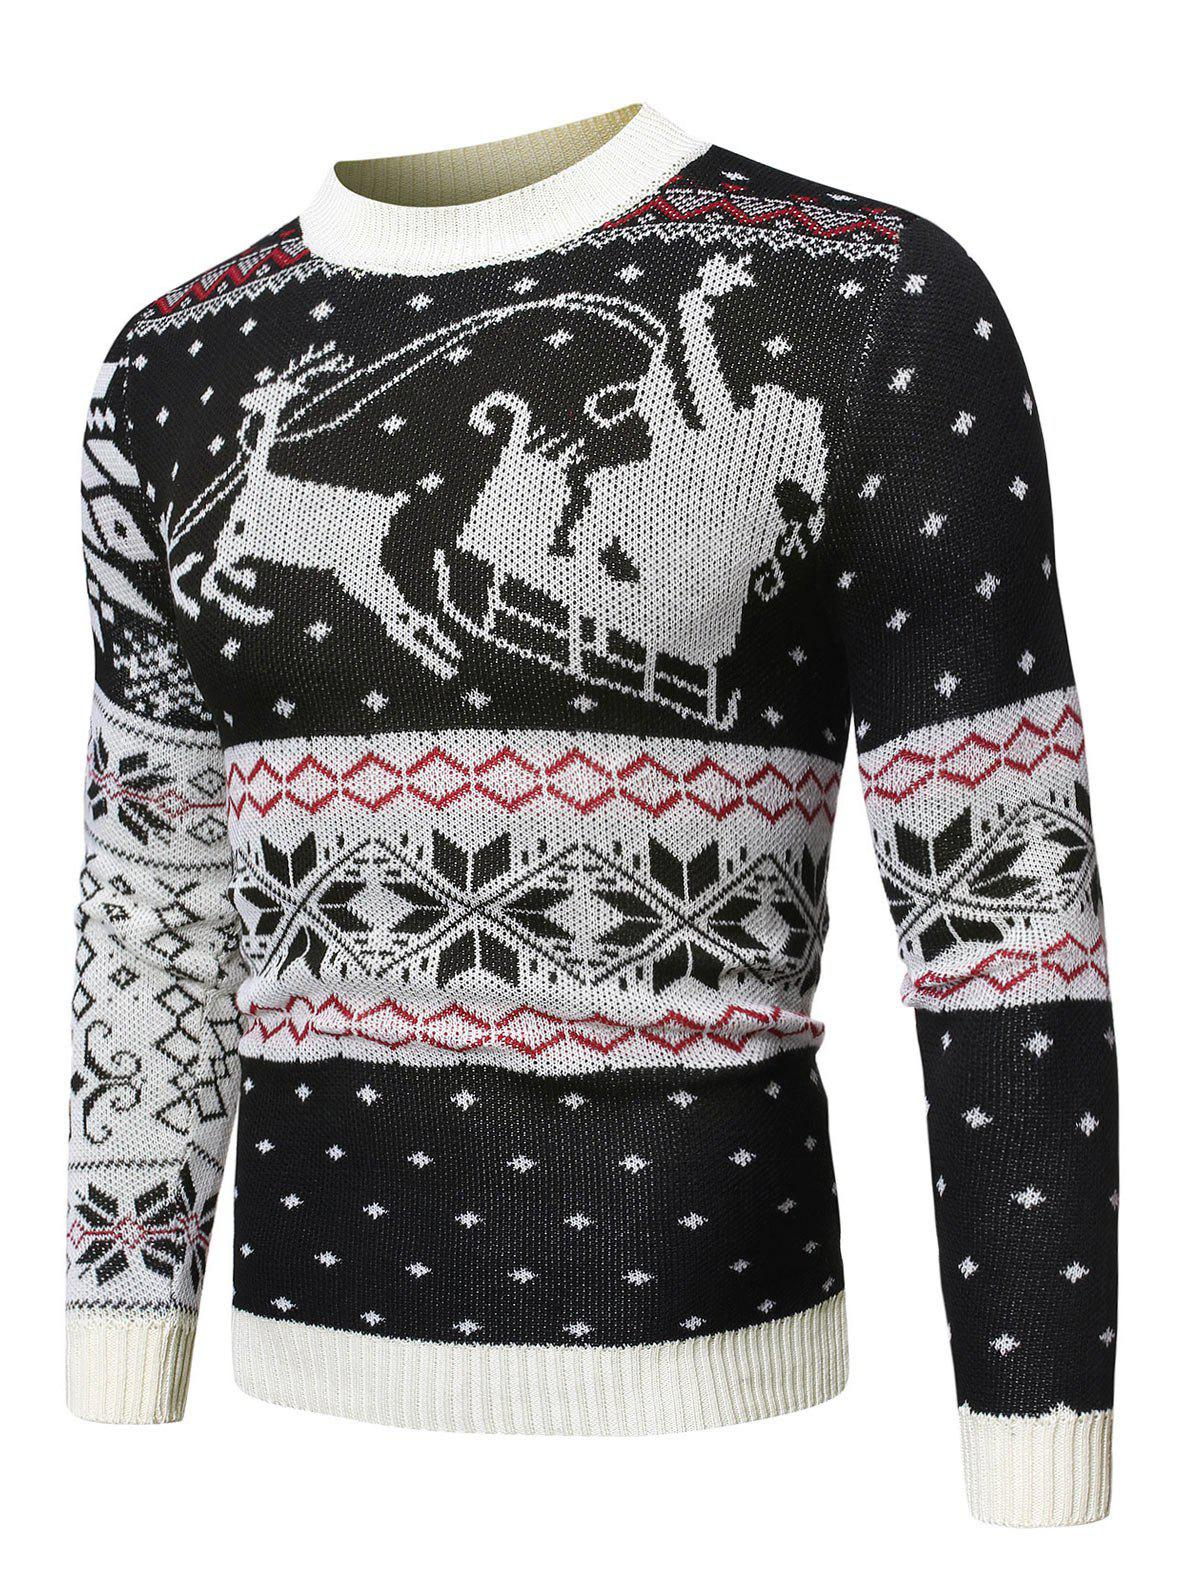 Wapiti Pattern Christmas Pullover Sweater - BLACK M